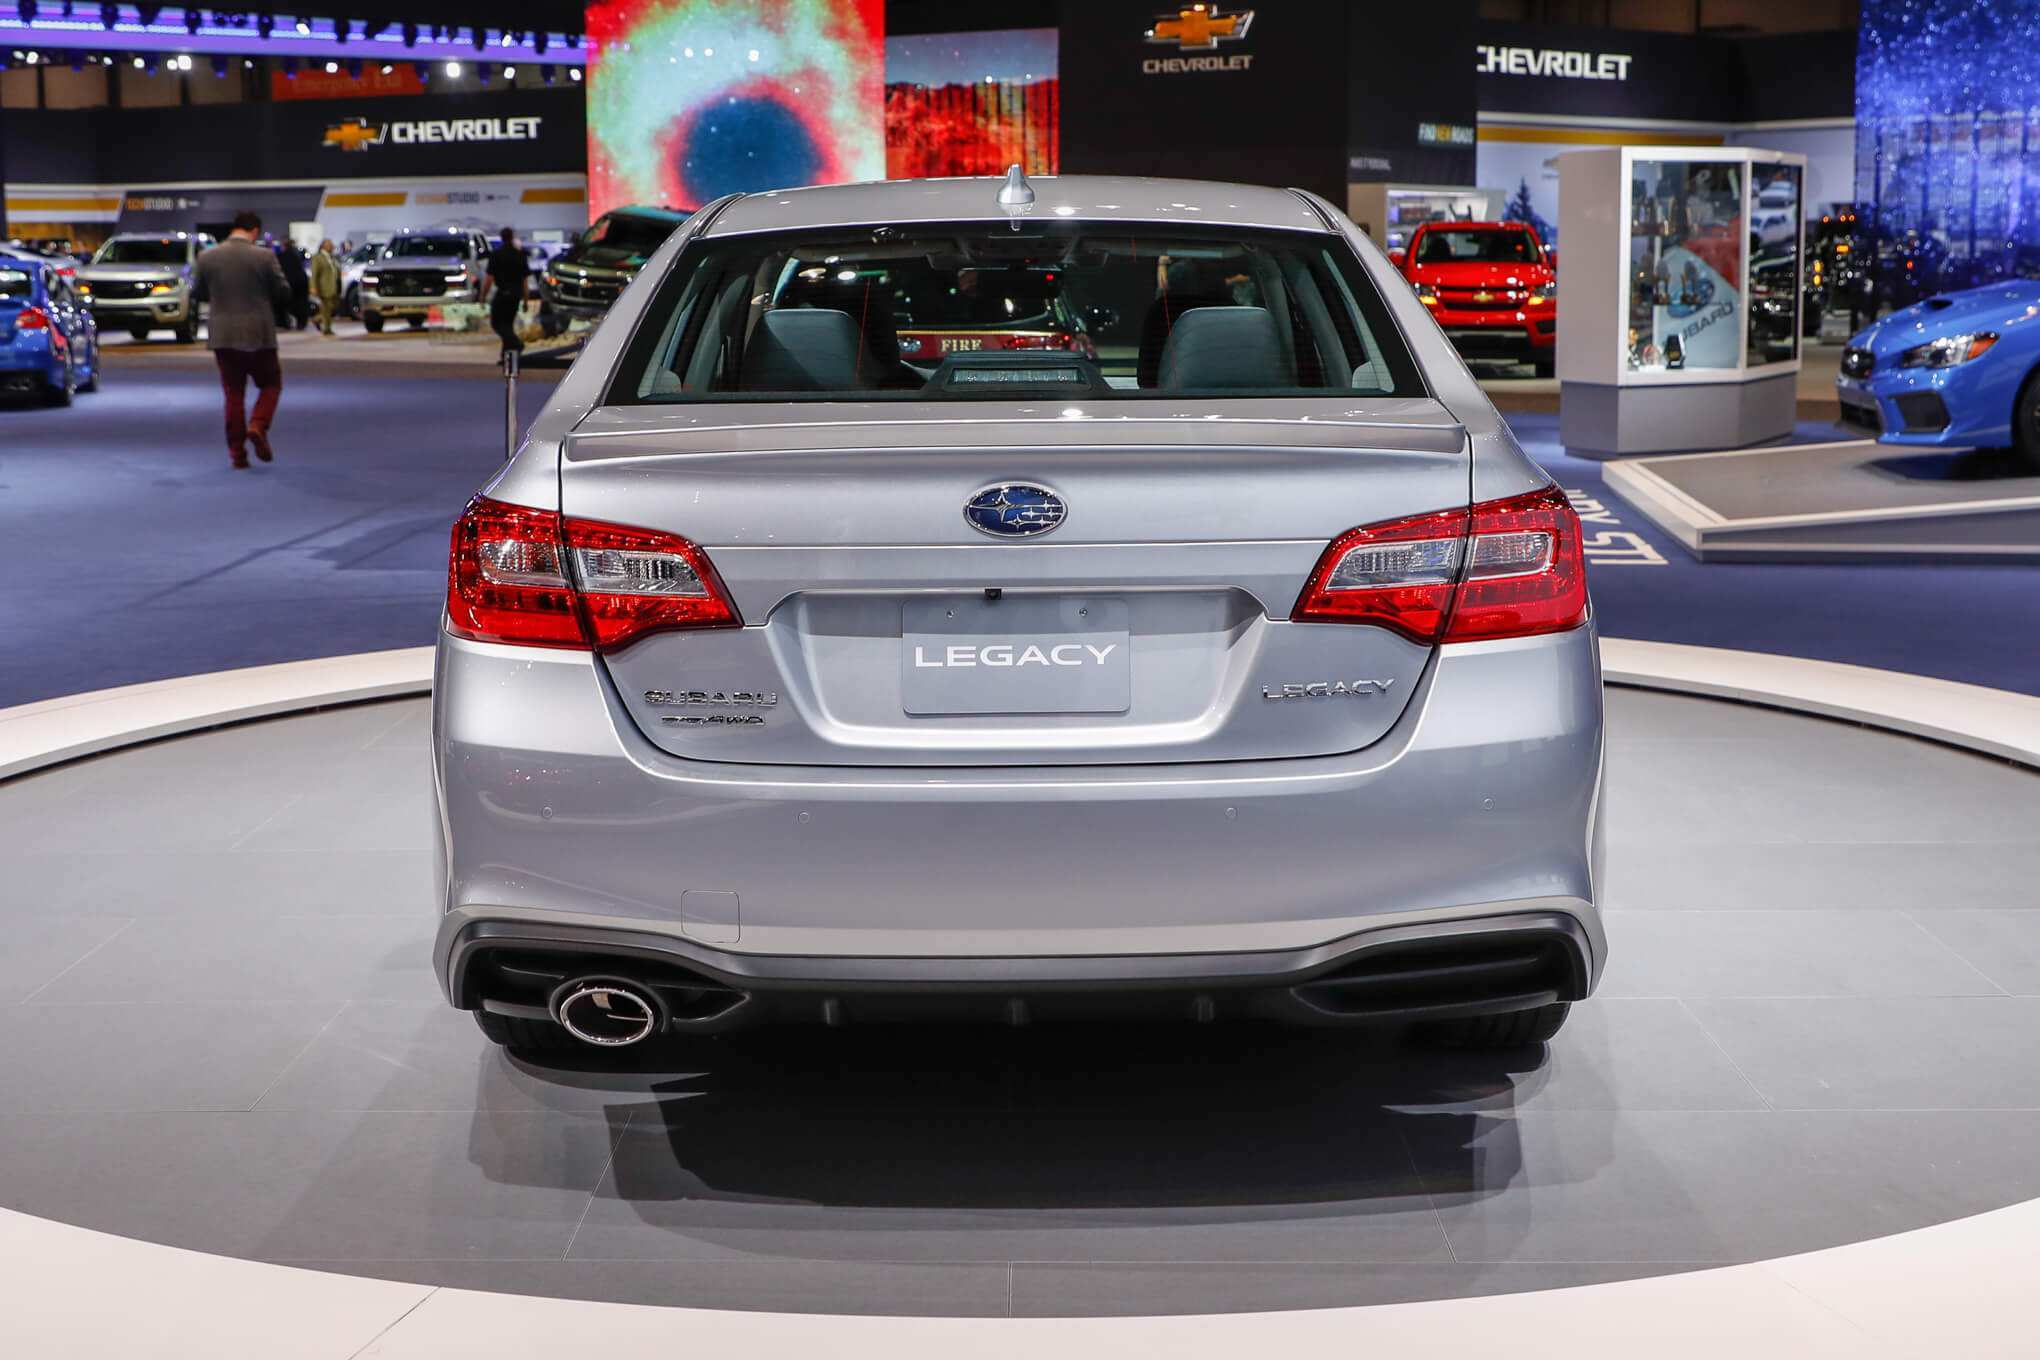 15 Concept of Subaru Plans For 2019 Concept Redesign And Review Ratings for Subaru Plans For 2019 Concept Redesign And Review